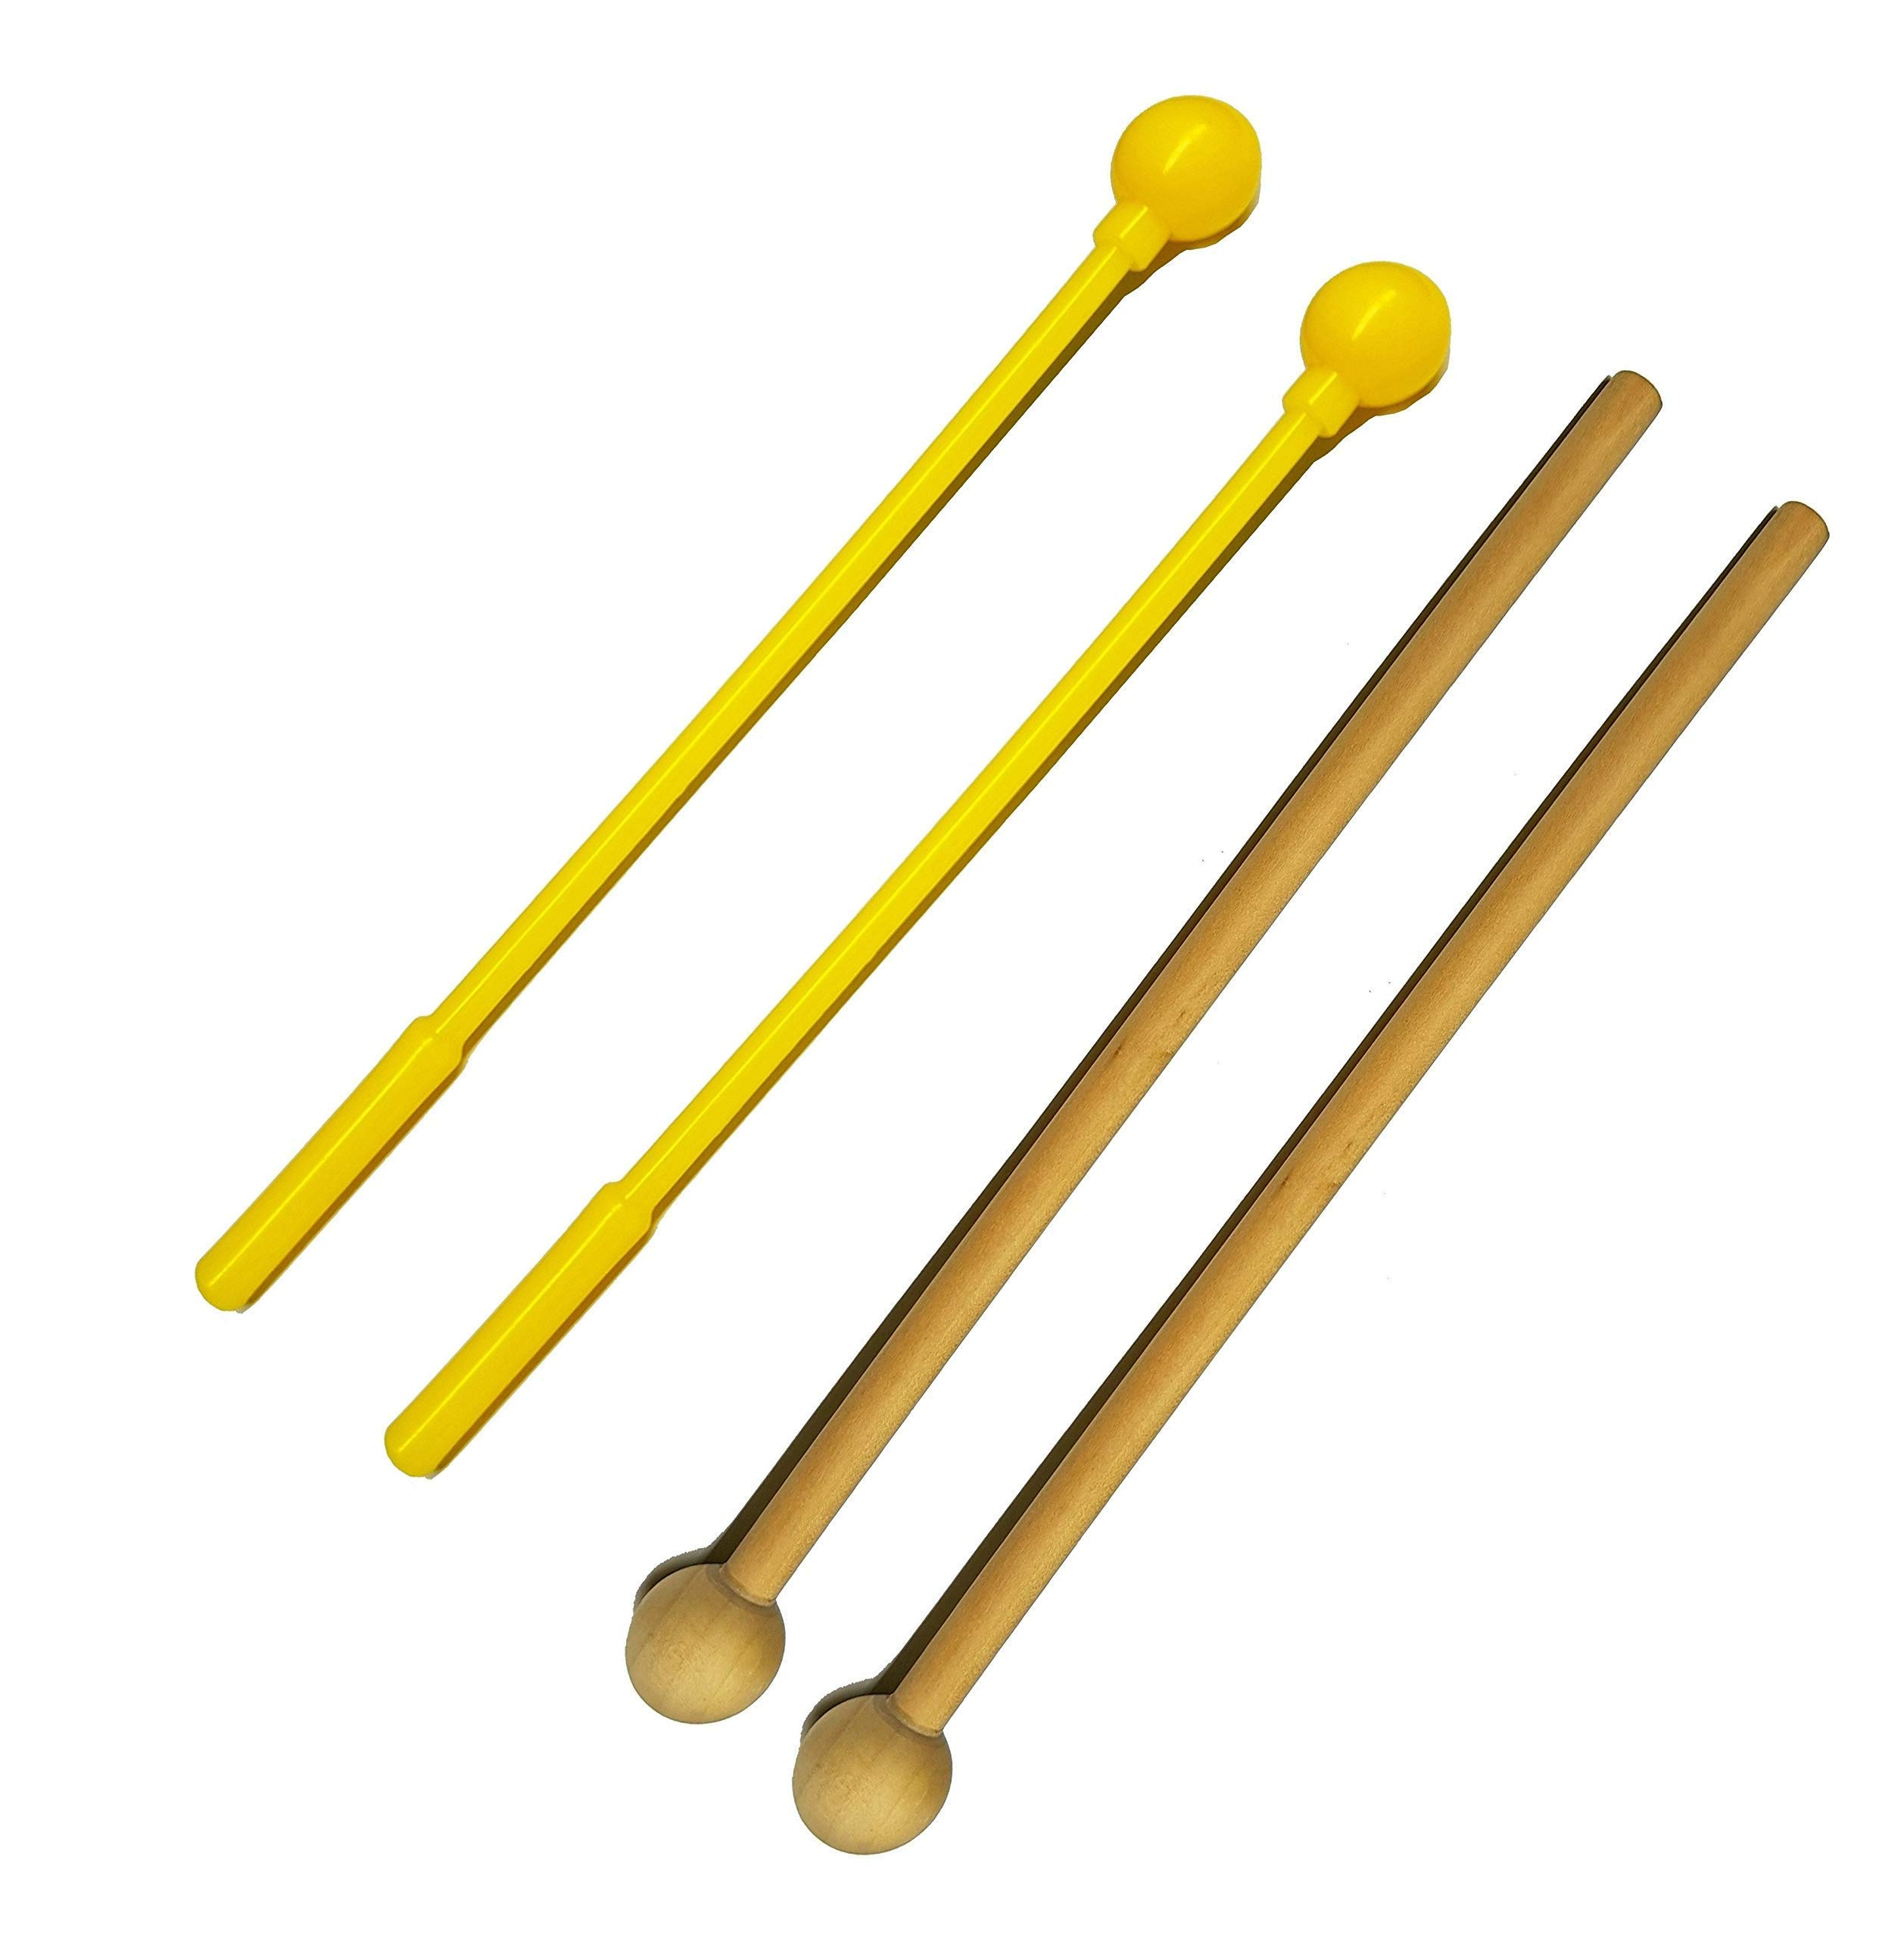 Xylophone for Kids: Glockenspiel Toy Best Birthday/Holiday Gift Idea - With(Four) Child-Safe Mallets 2 Wood 2 Plastic, 3 Music Card & Whistle Included by aGreat Shark (Image #5)